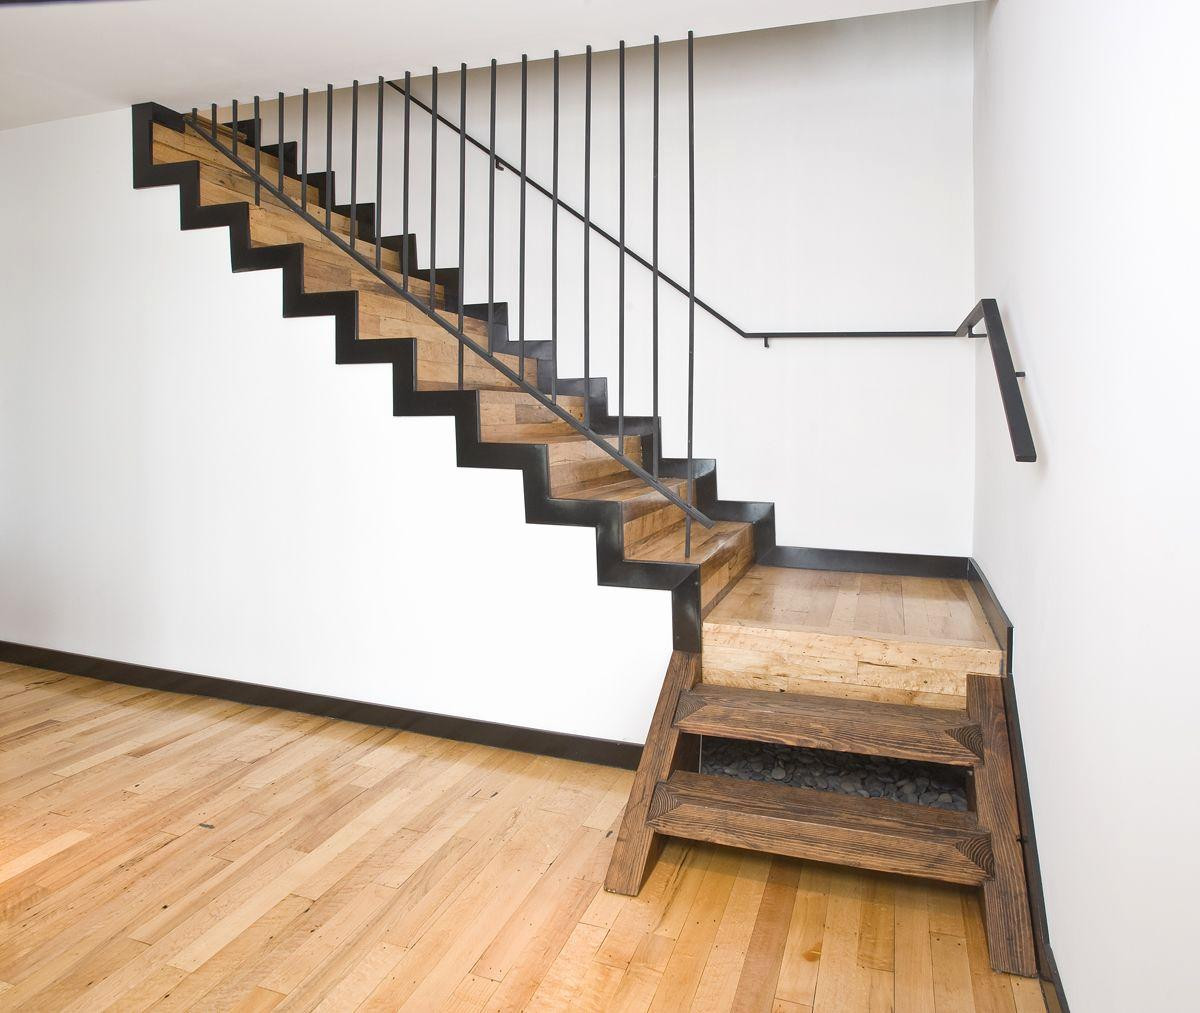 hardwood floor stairs ideas of new of diy stair railing ideas stock artsvisuelscaribeens com within diy stair railing ideas elegant staircase railing ideas pin od poua¾vatea¾a